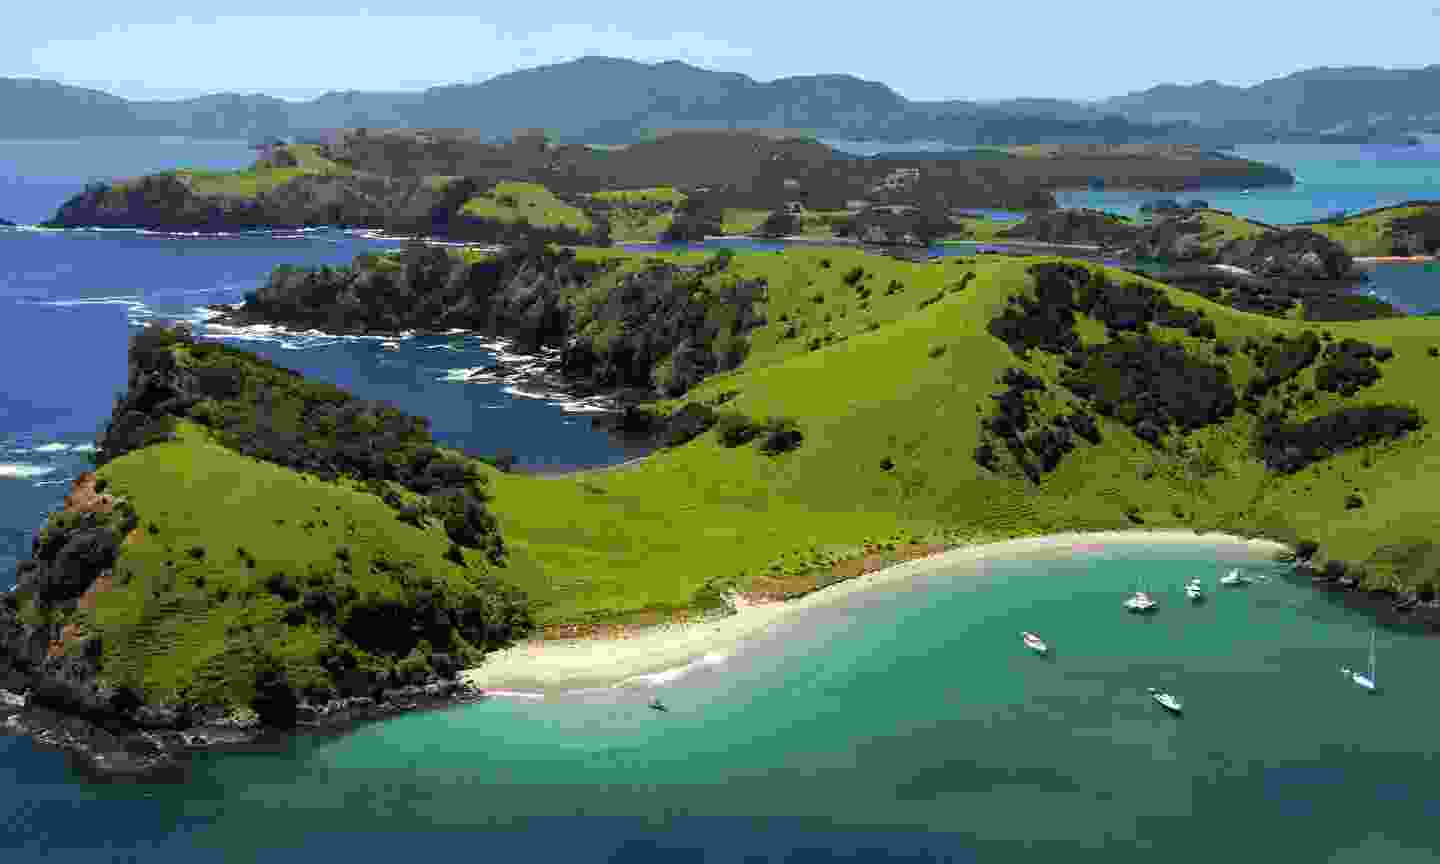 Waewaetorea Passage in the Bay of Islands (Dreamstime)